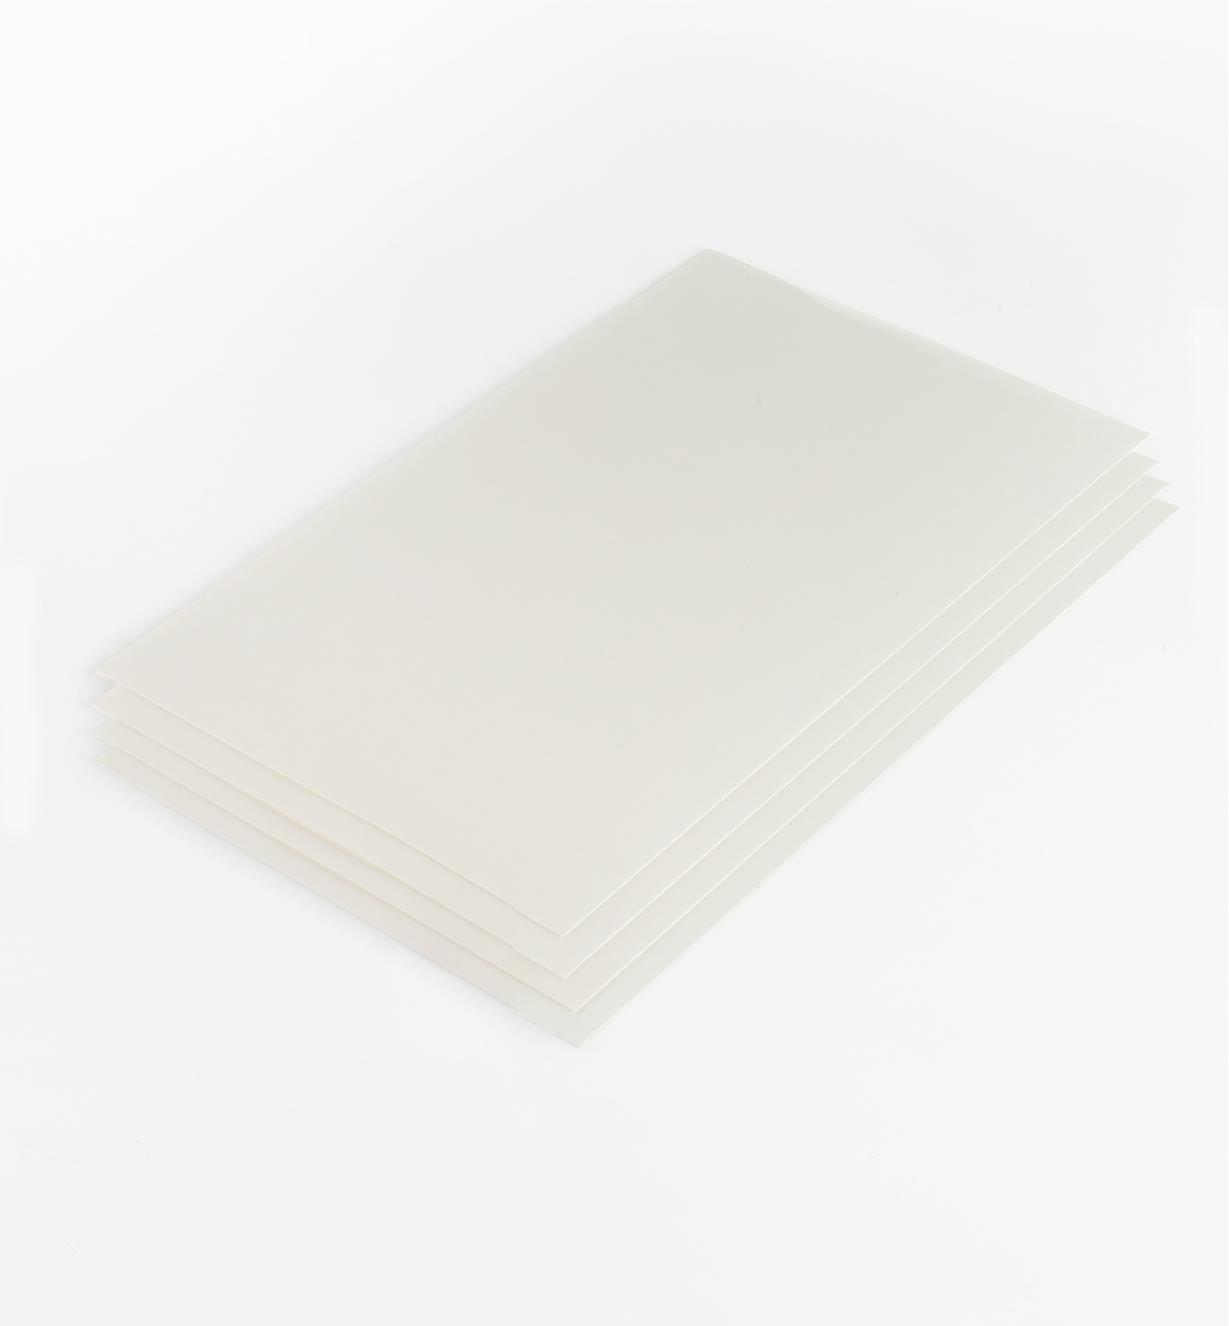 05M2011 - Repl. Laminate Sheets, pkg. of 4